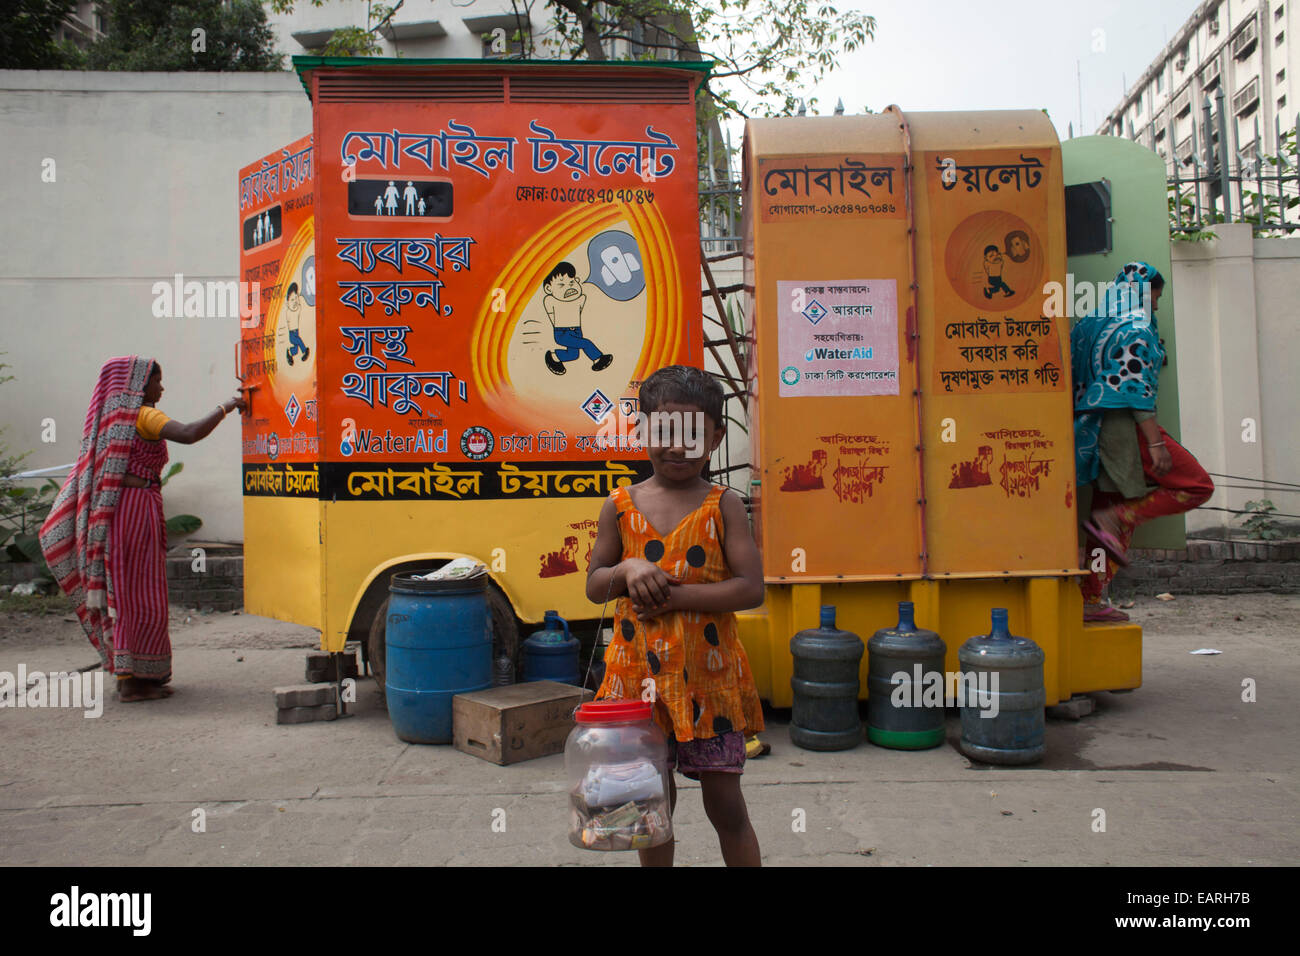 A street child hawcker in front of Itinerant Mobile toilet beside street in Dhaka. Inadequate sanitation in South - Stock Image